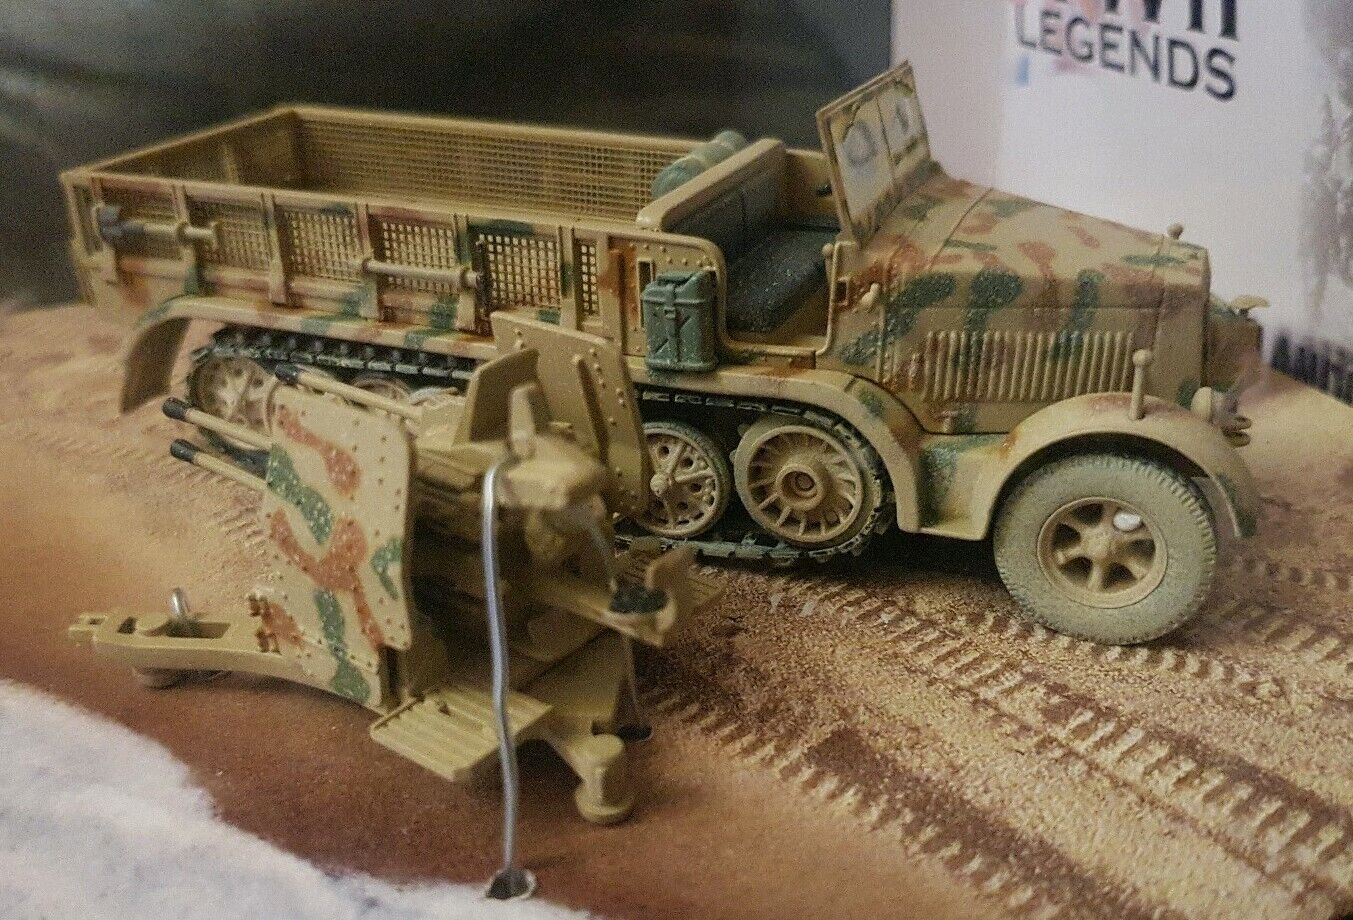 Corgi WWII Legends Sd.Kfz 7 1 Krauss-Maffei Panzer Support Vehicle CC60006 1 50